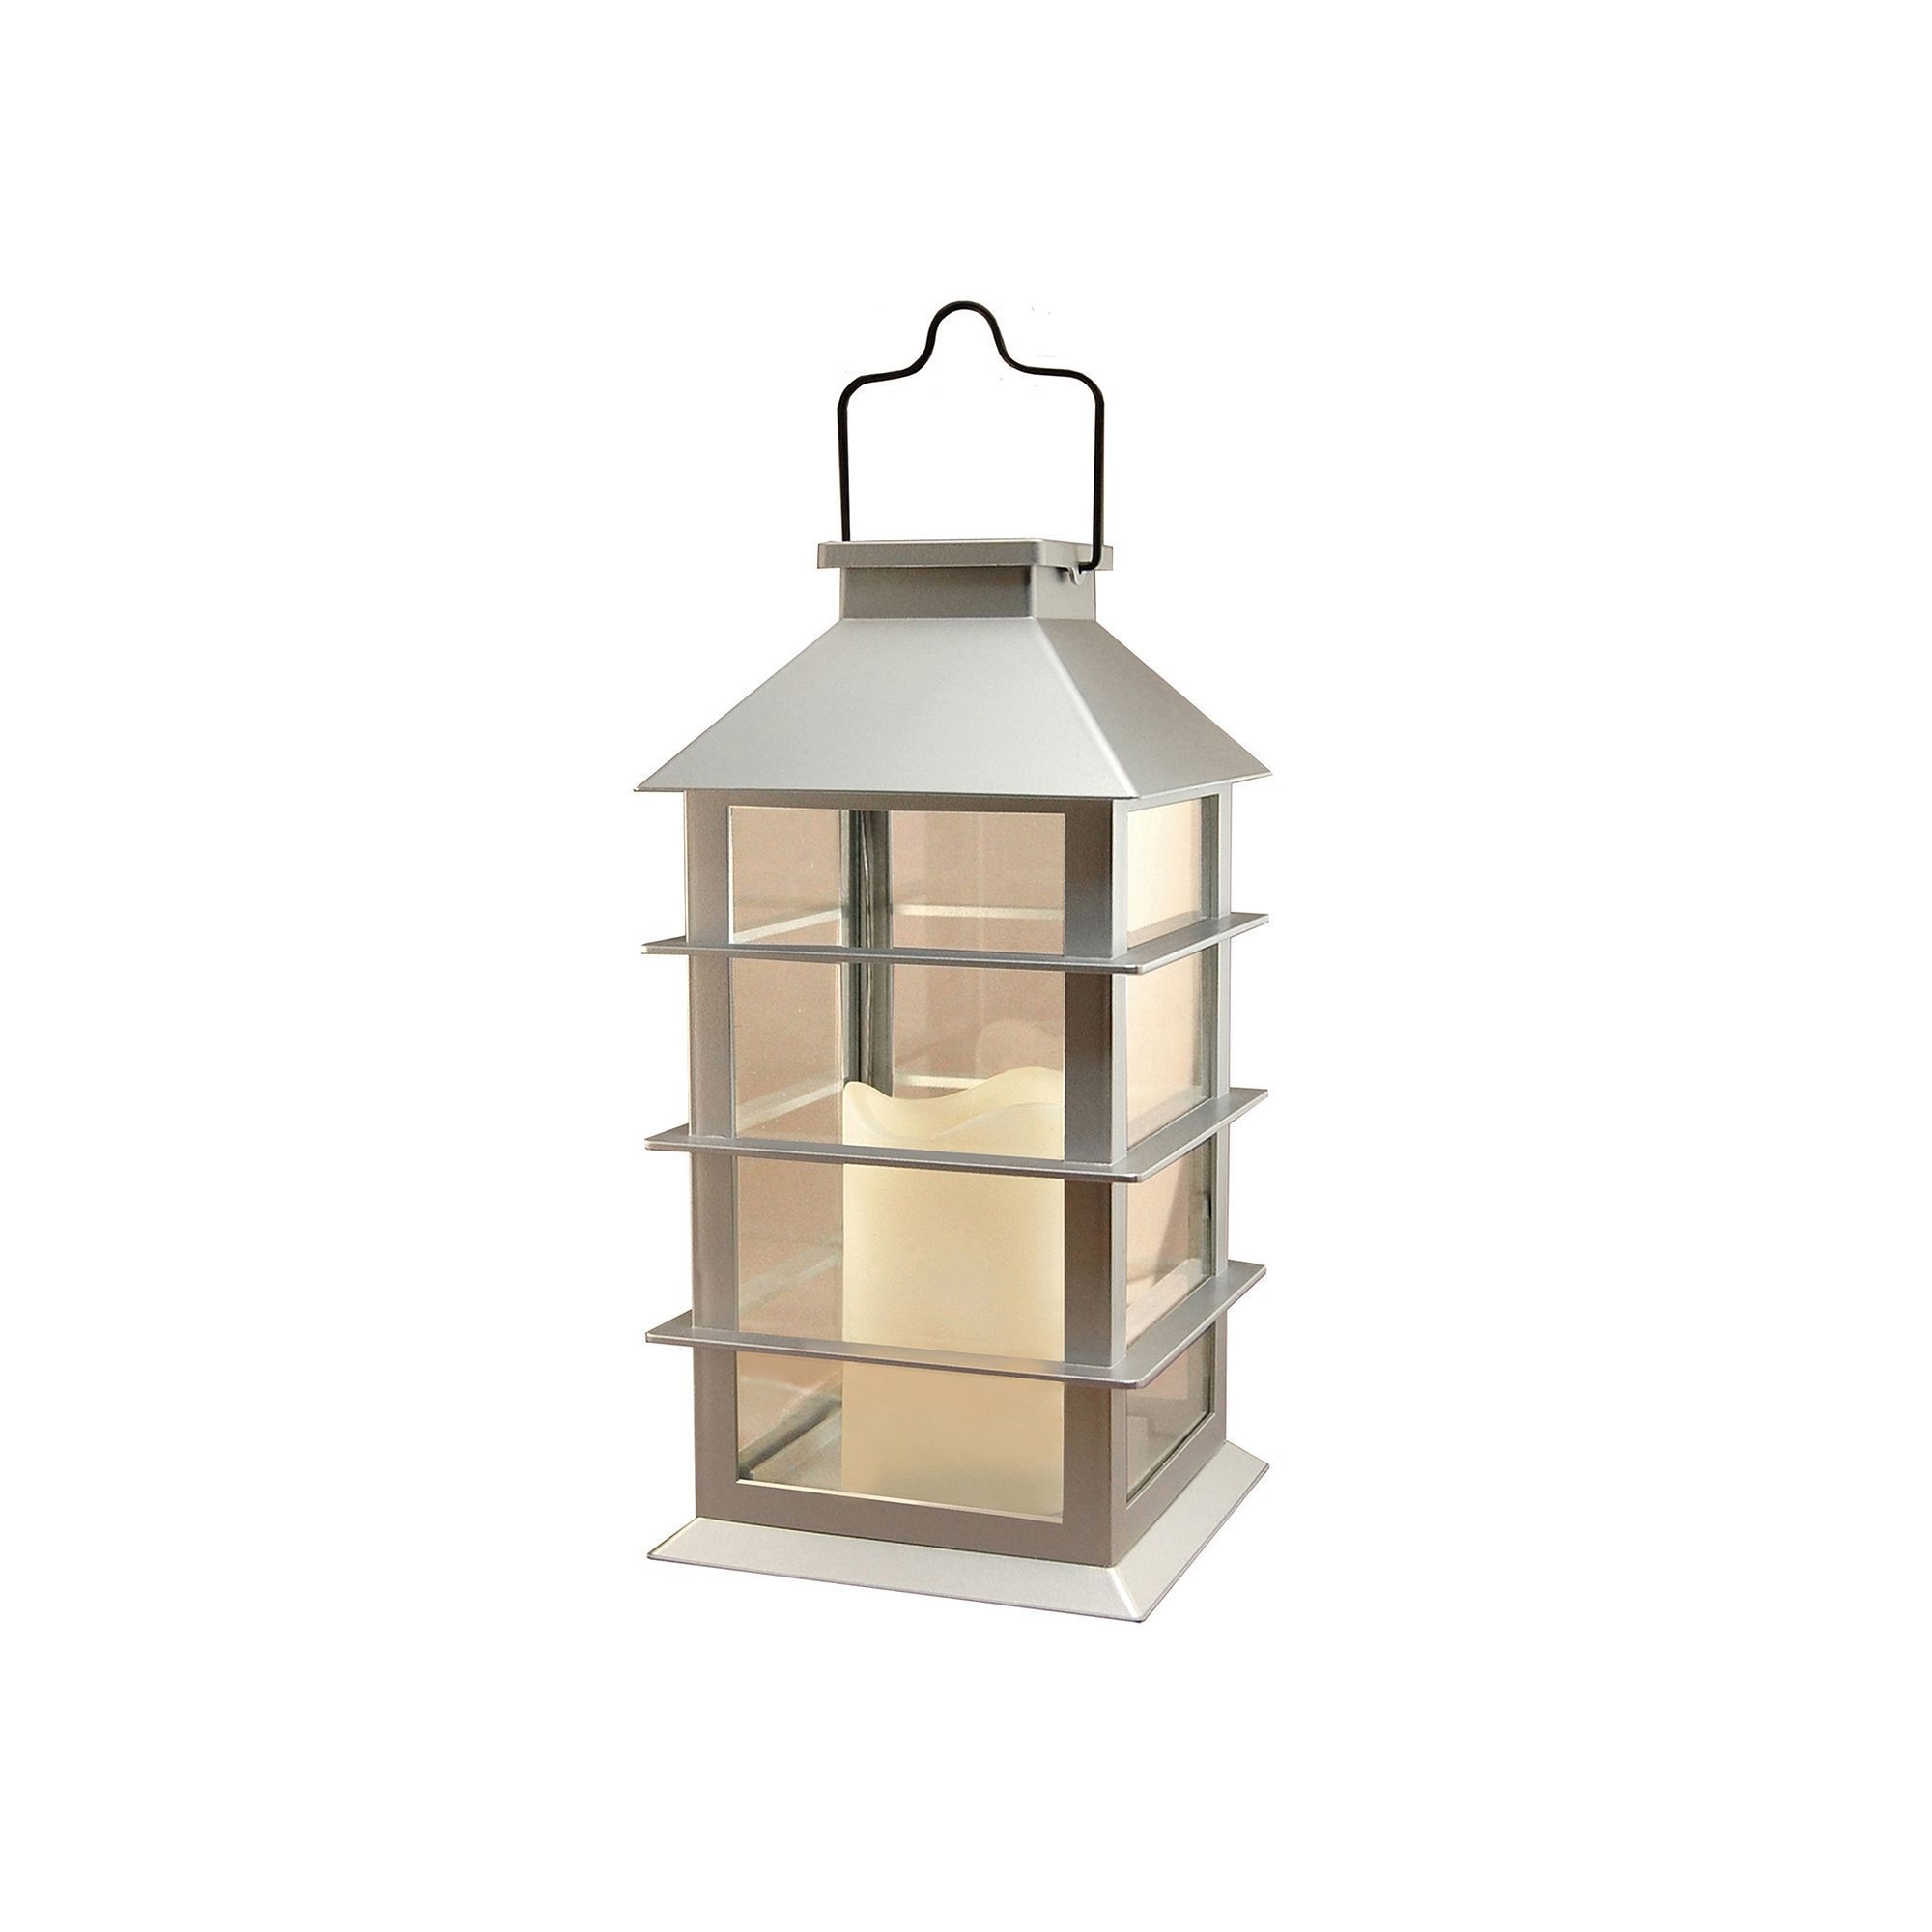 Famous Lumabase Silver Solar Lantern & Led Candle, Clrs (Gallery 20 of 20)